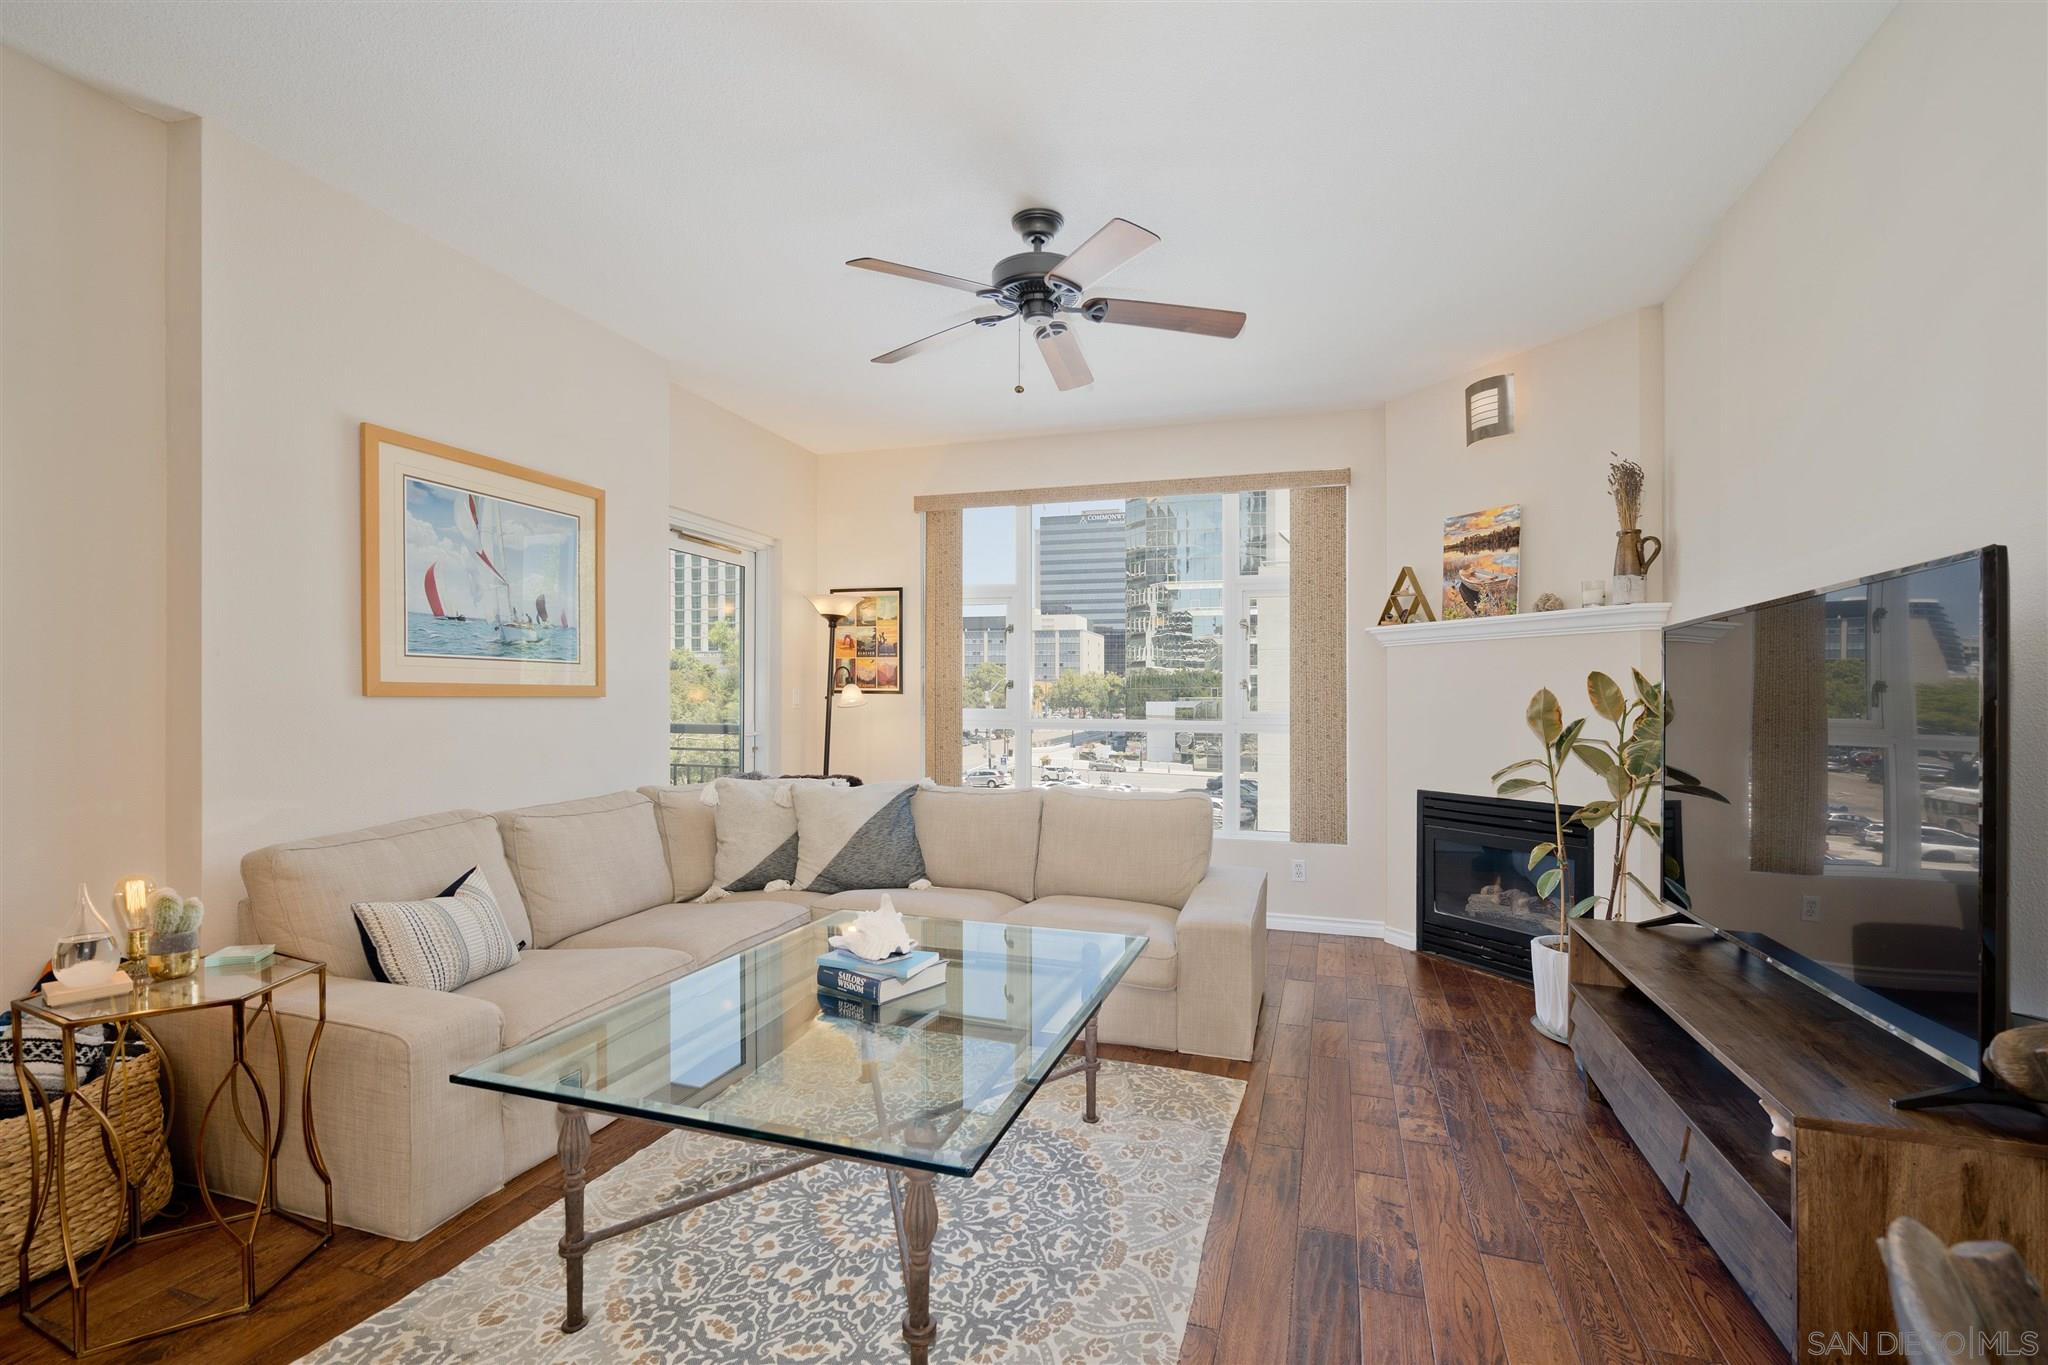 Property at 1240 India St San Diego